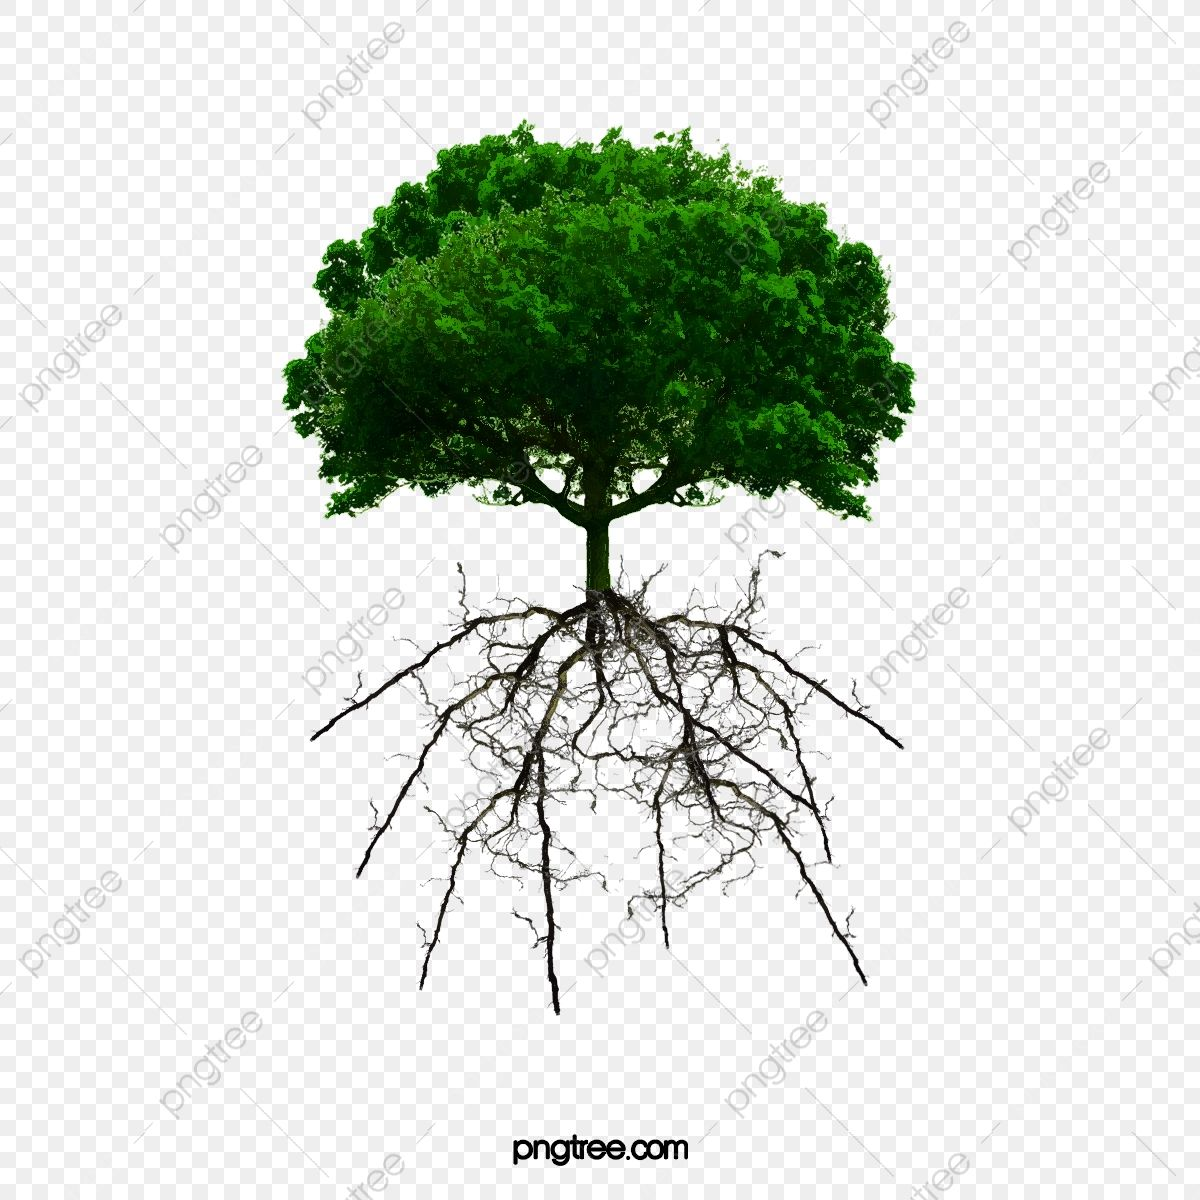 Tree Roots Tree Clipart Trees Root Png Transparent Clipart Image And Psd File For Free Download Tree Roots Tree Clipart Cartoon Trees